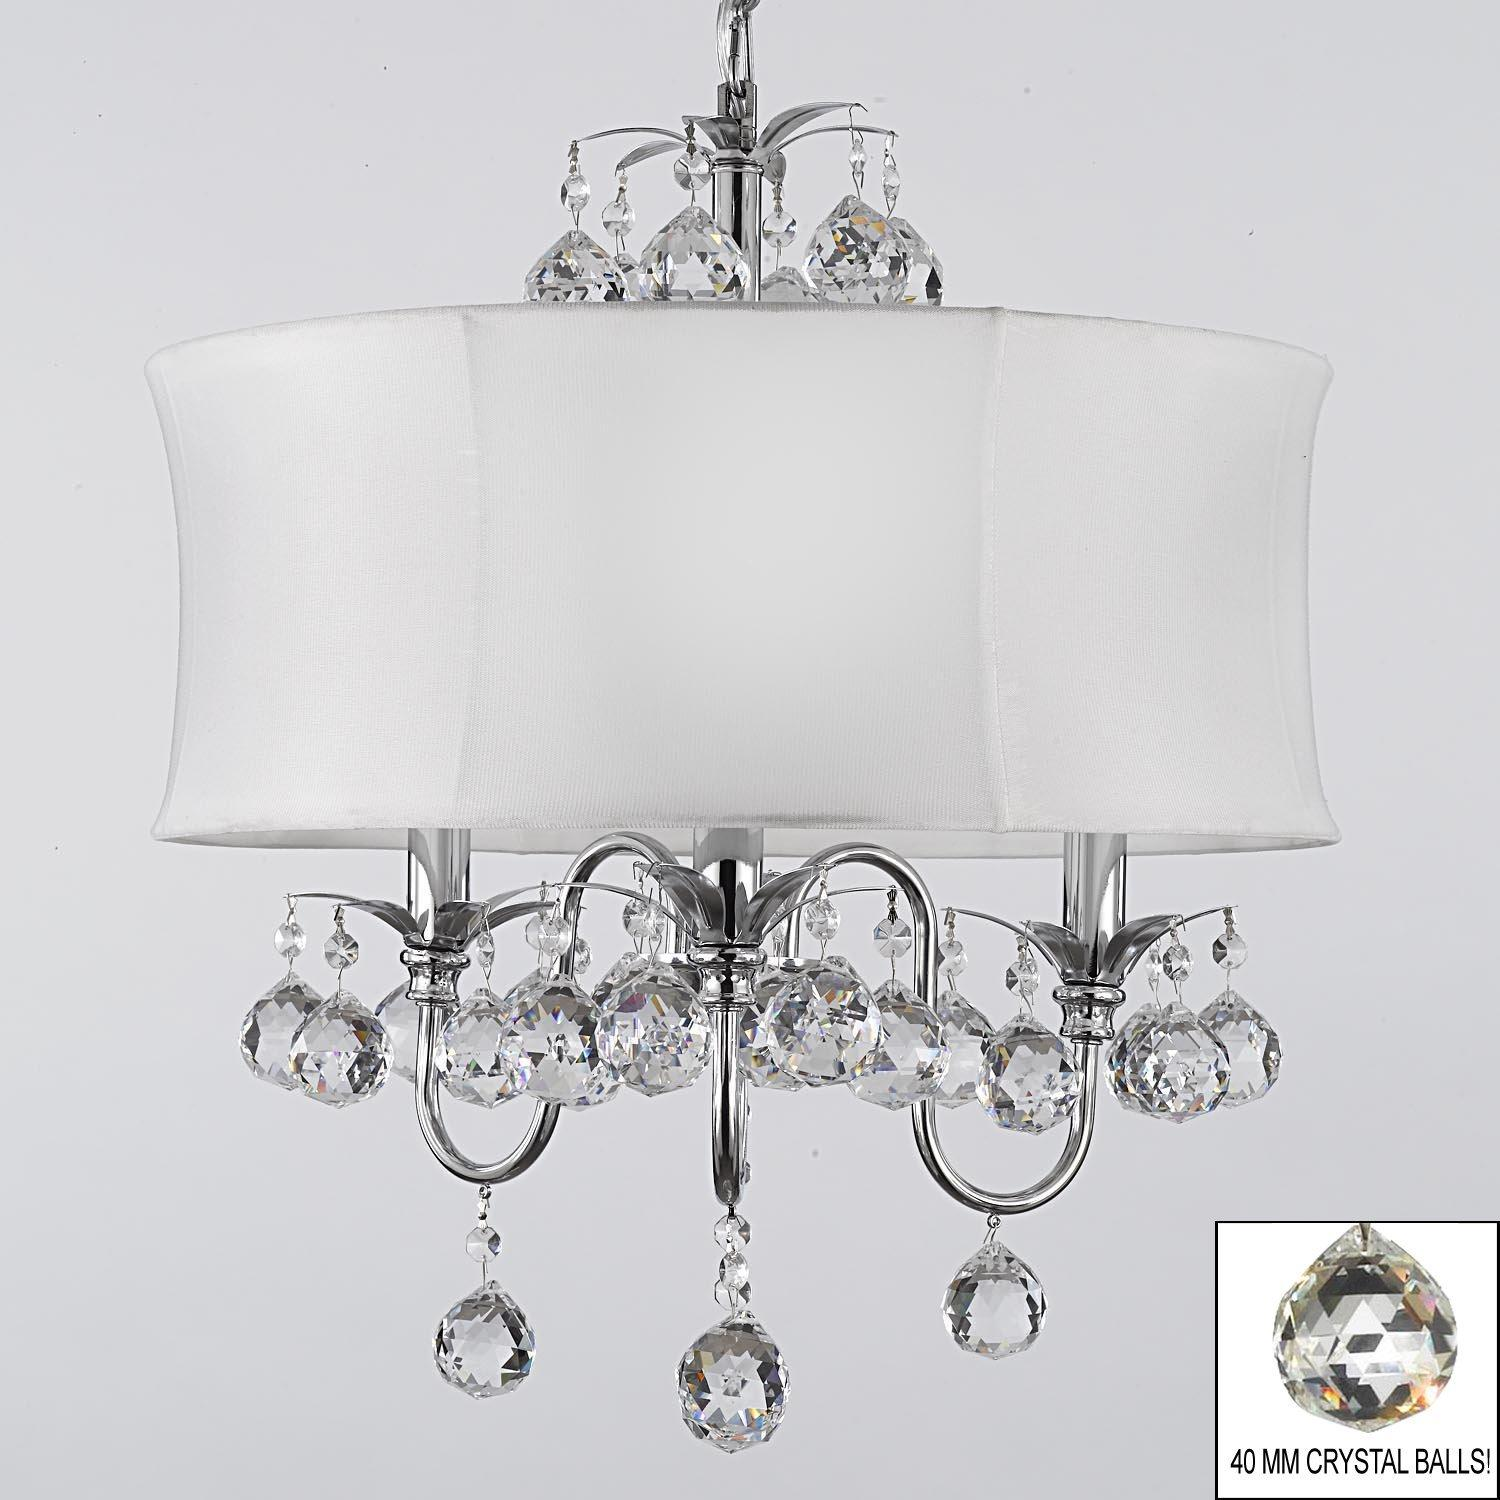 Modern Contemporary White Drum Shade & Crystal Ceiling Chandelier Lighting Pendant Lighting With Faceted Crystal Balls - Thumbnail 0